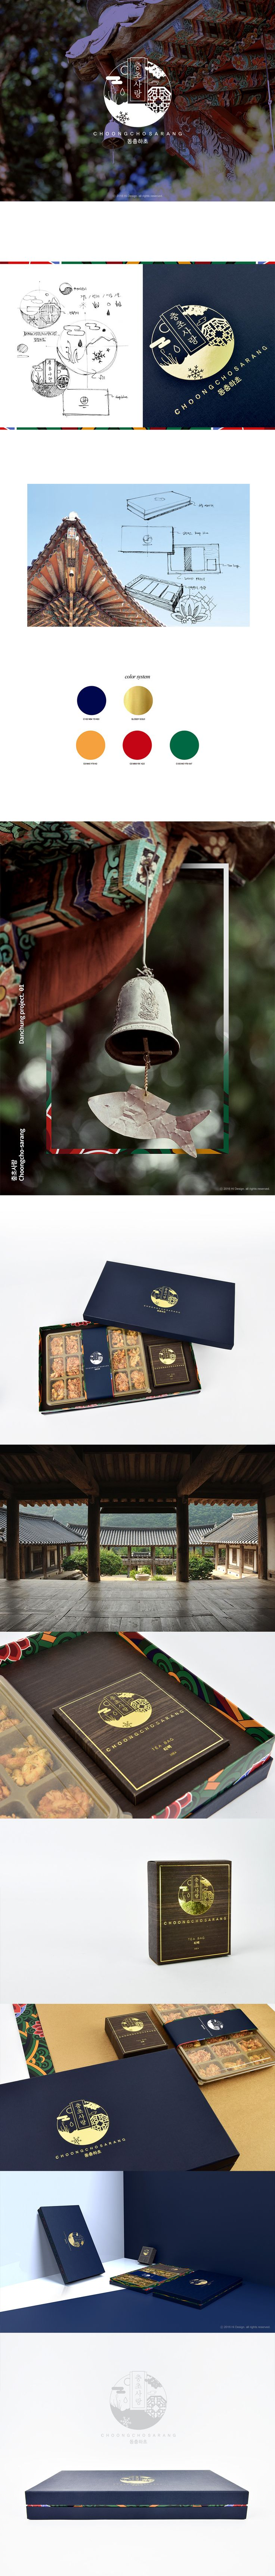 "내 @Behance 프로젝트 살펴보기: ""Korea Cordyceps package design"" https://www.behance.net/gallery/46428331/Korea-Cordyceps-package-design"